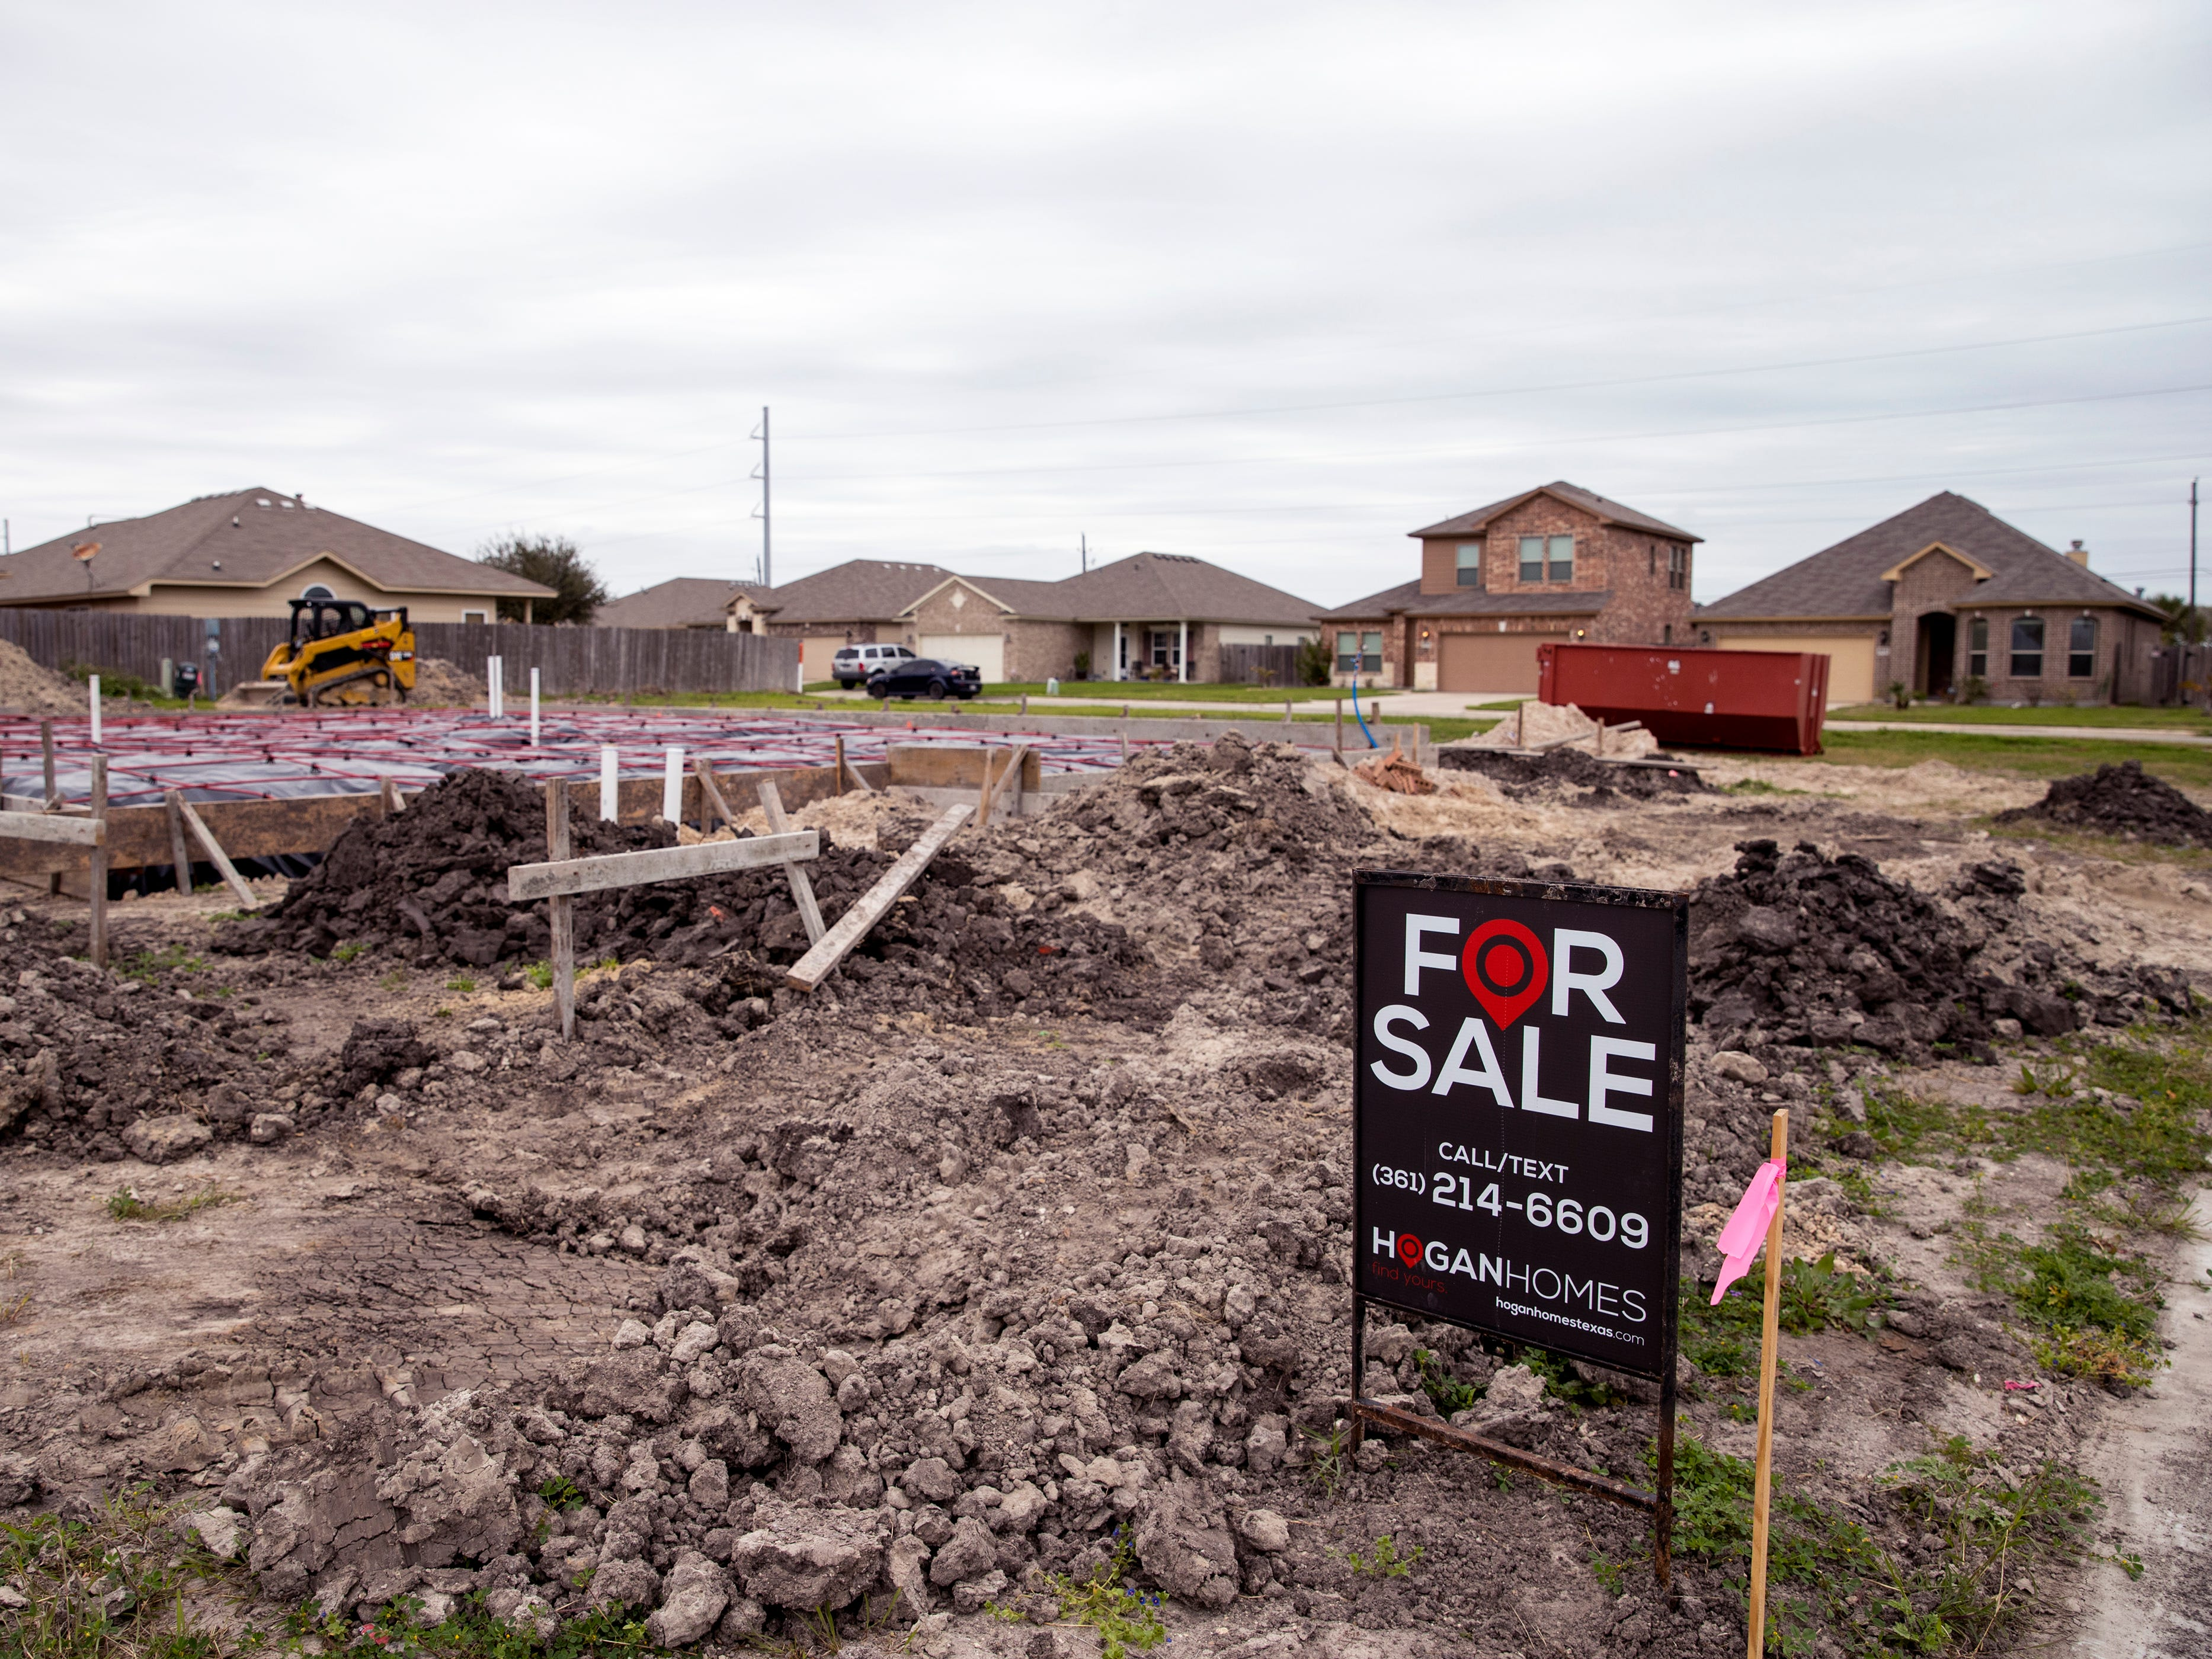 Homes are under construction in a Hogan Homes subdivision on Luz de Luna Street on the Southside on Monday, February 25, 2018.